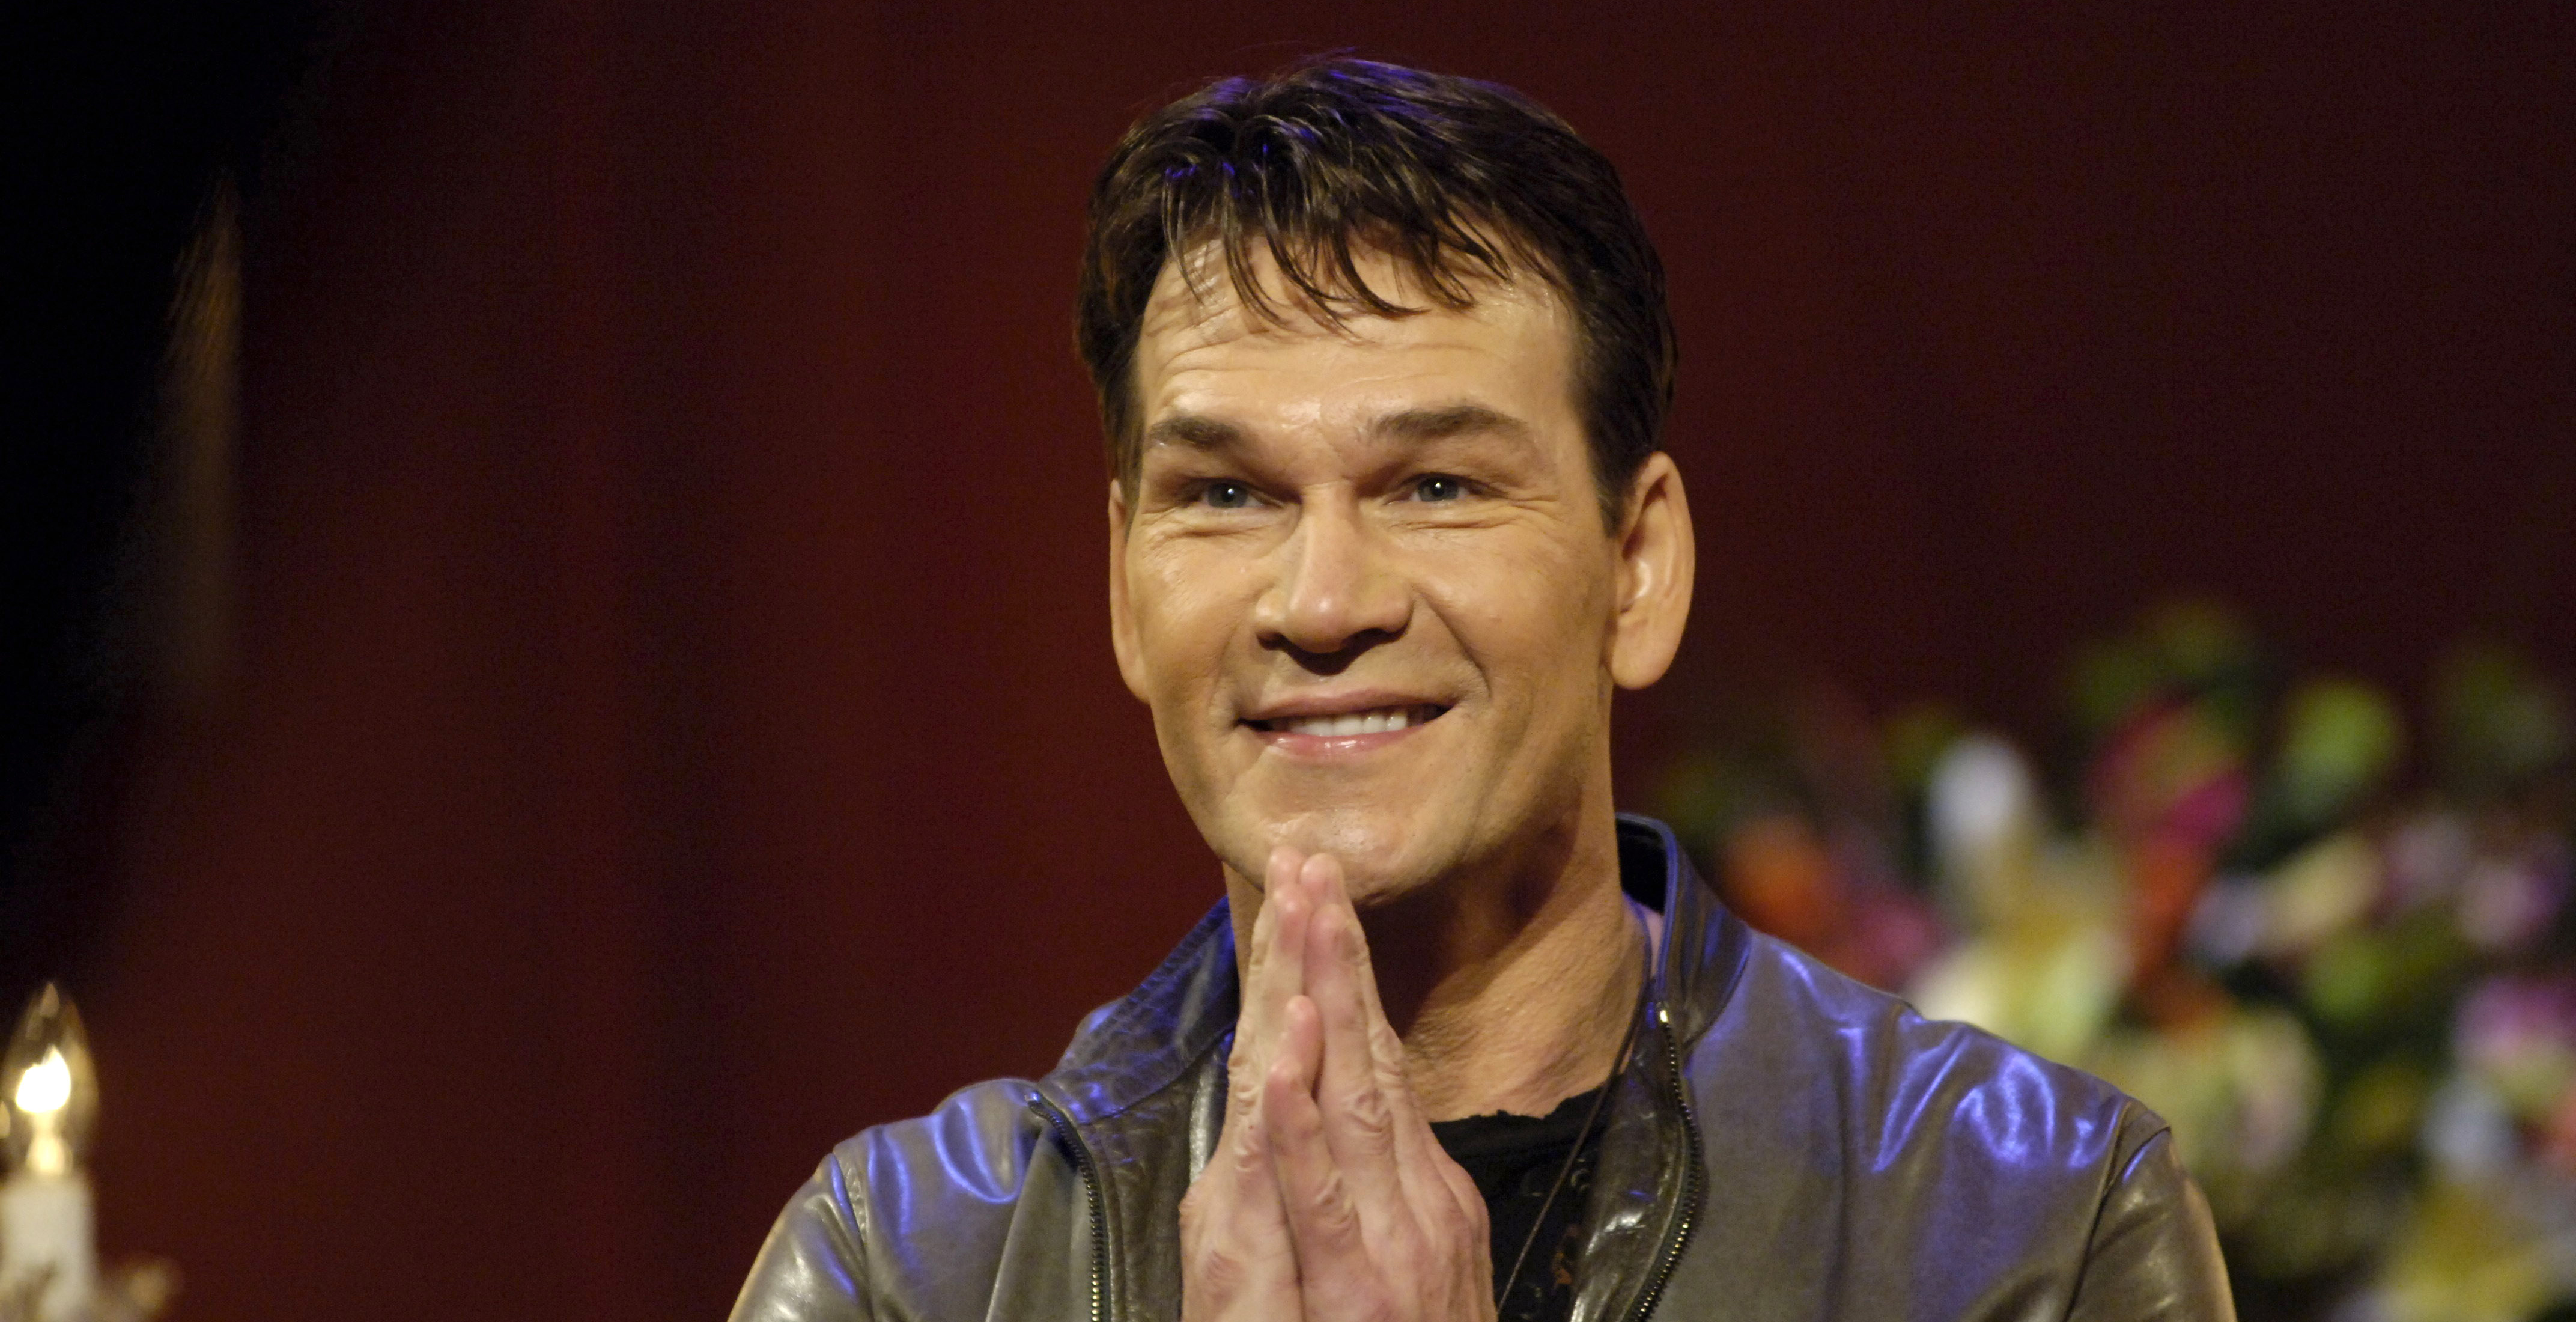 Patrick Swayze Movies: 'Dirty Dancing' to 'Ghost' and Beyond